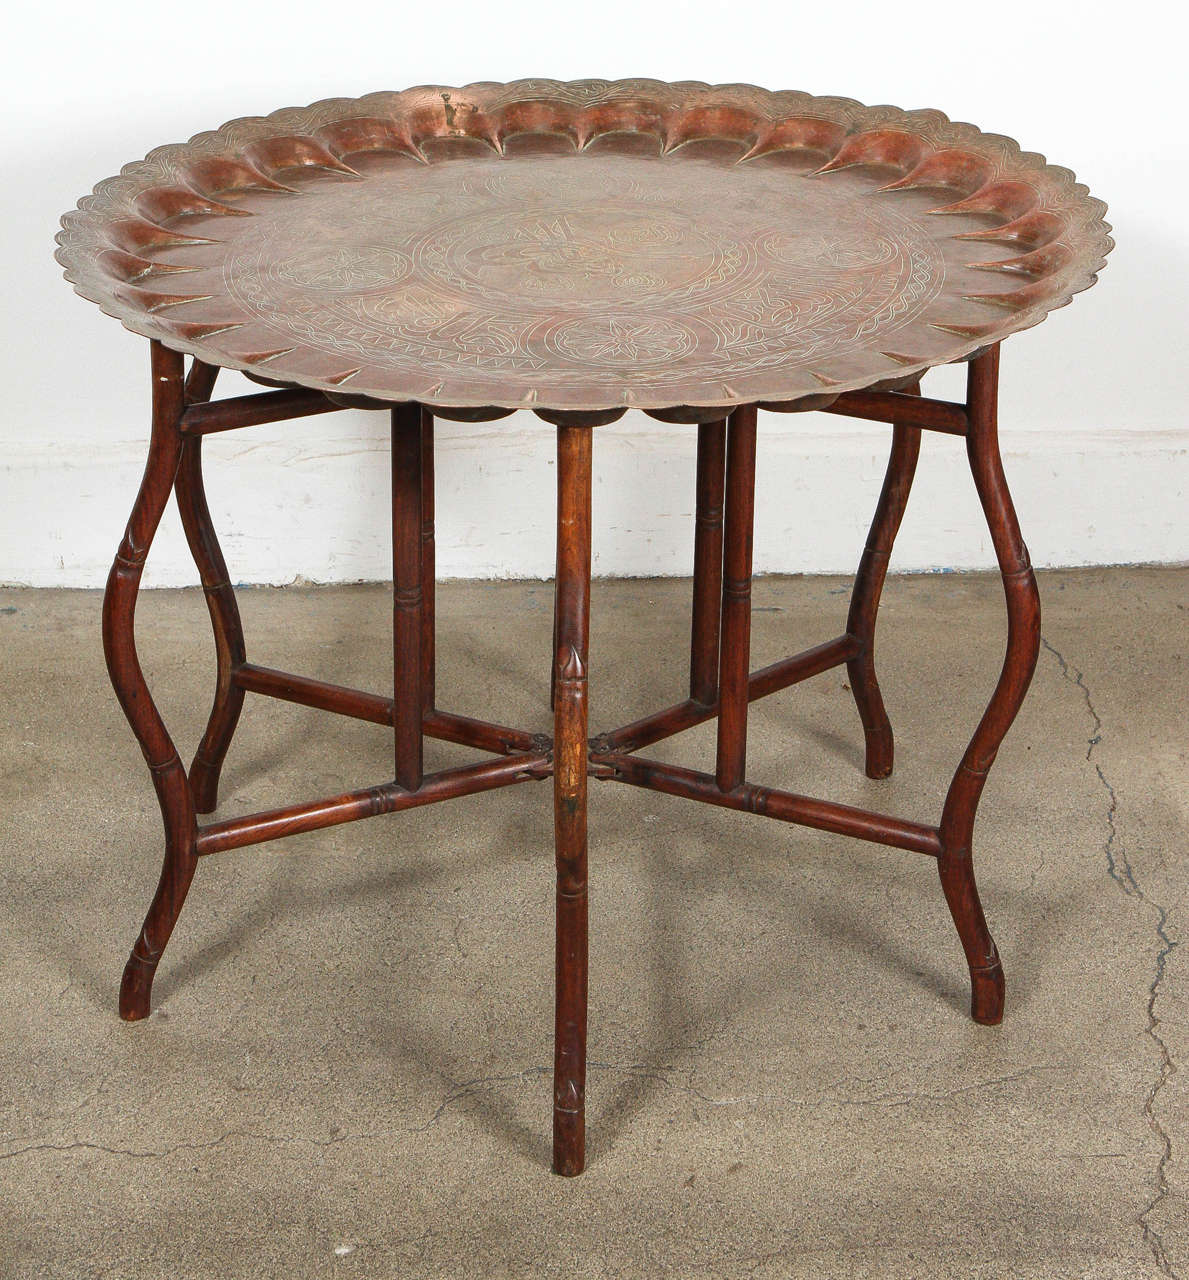 Very hard to find large scaleTurkish copper tray table on bamboo folding base, could be use as a coffee table or game table, this is how they use them in Morocco, Syria, India, Egypt and in the Middle East to serve food or tea or play. Great for